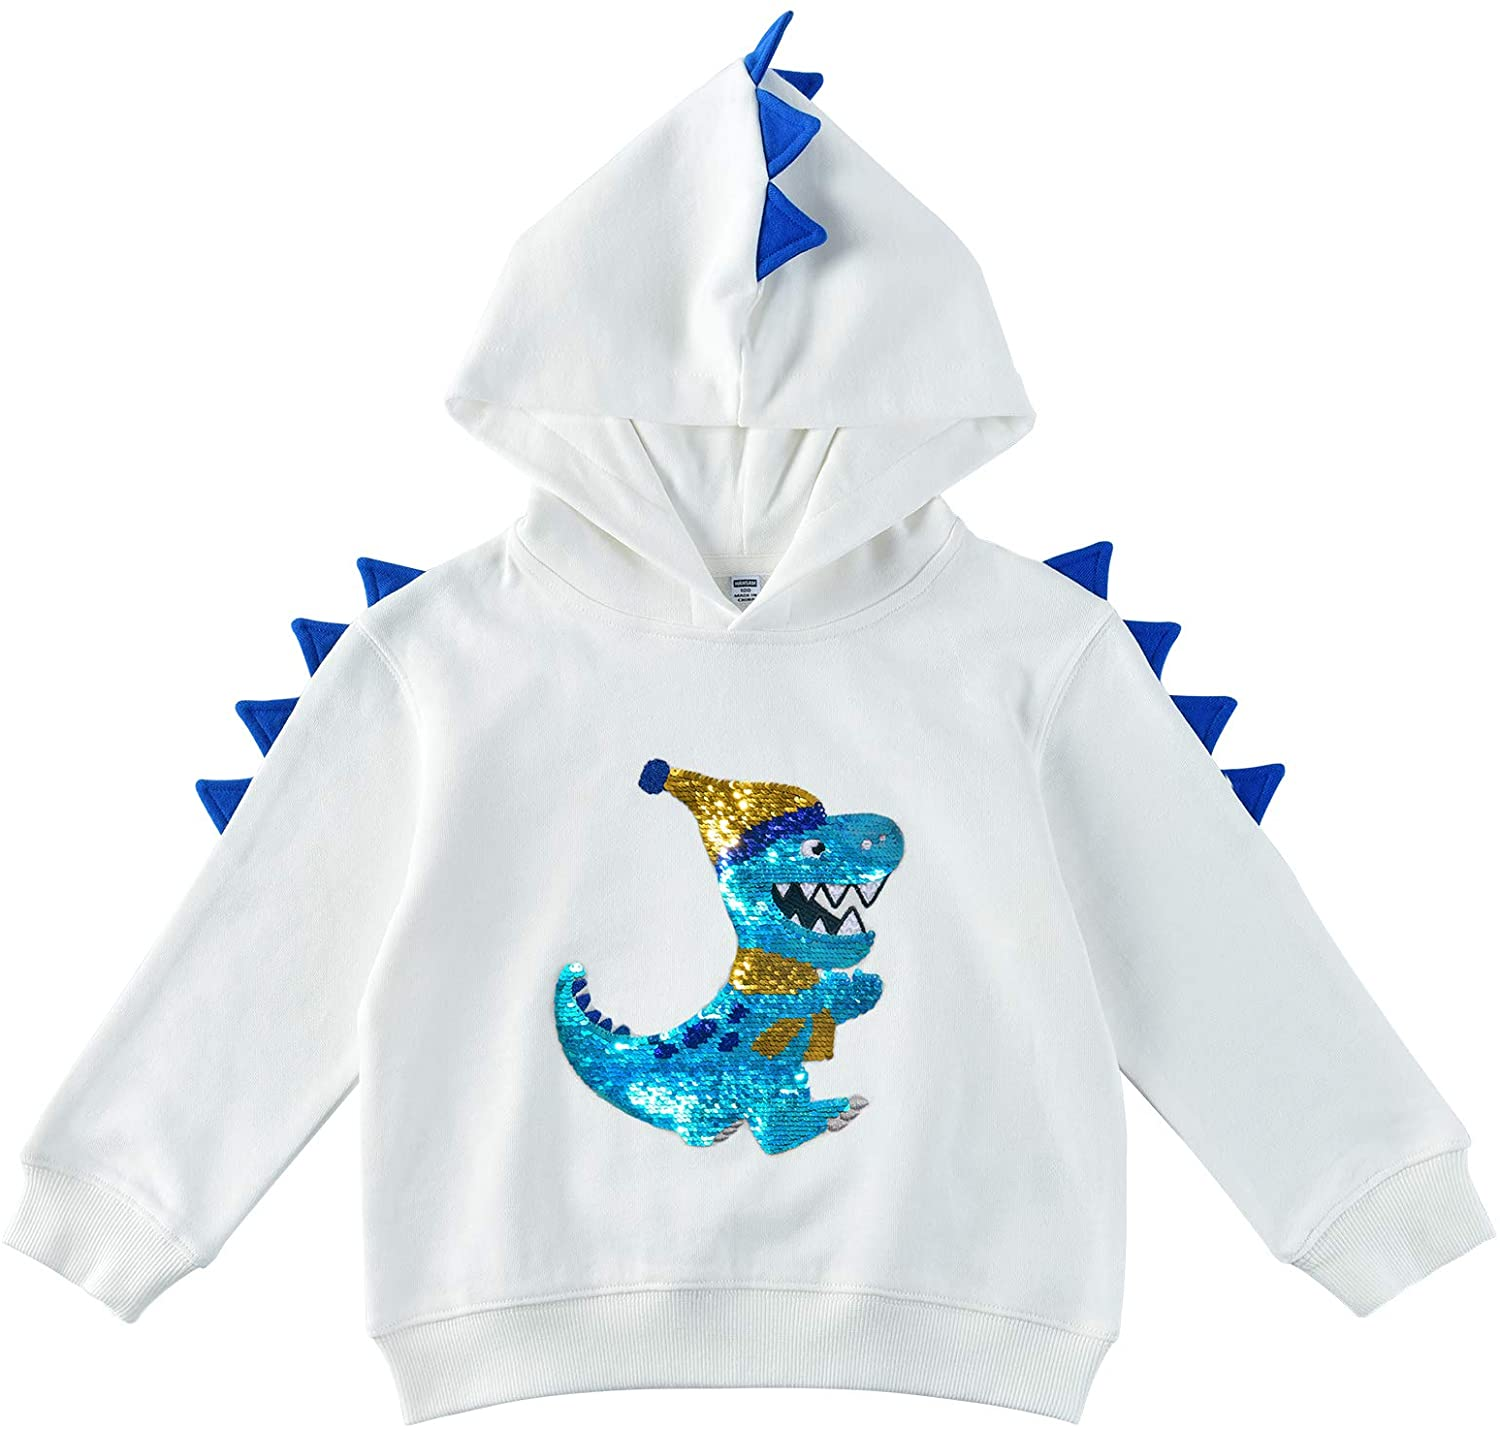 Dinosaur Sweatshirt Printed Hoodies For Kids